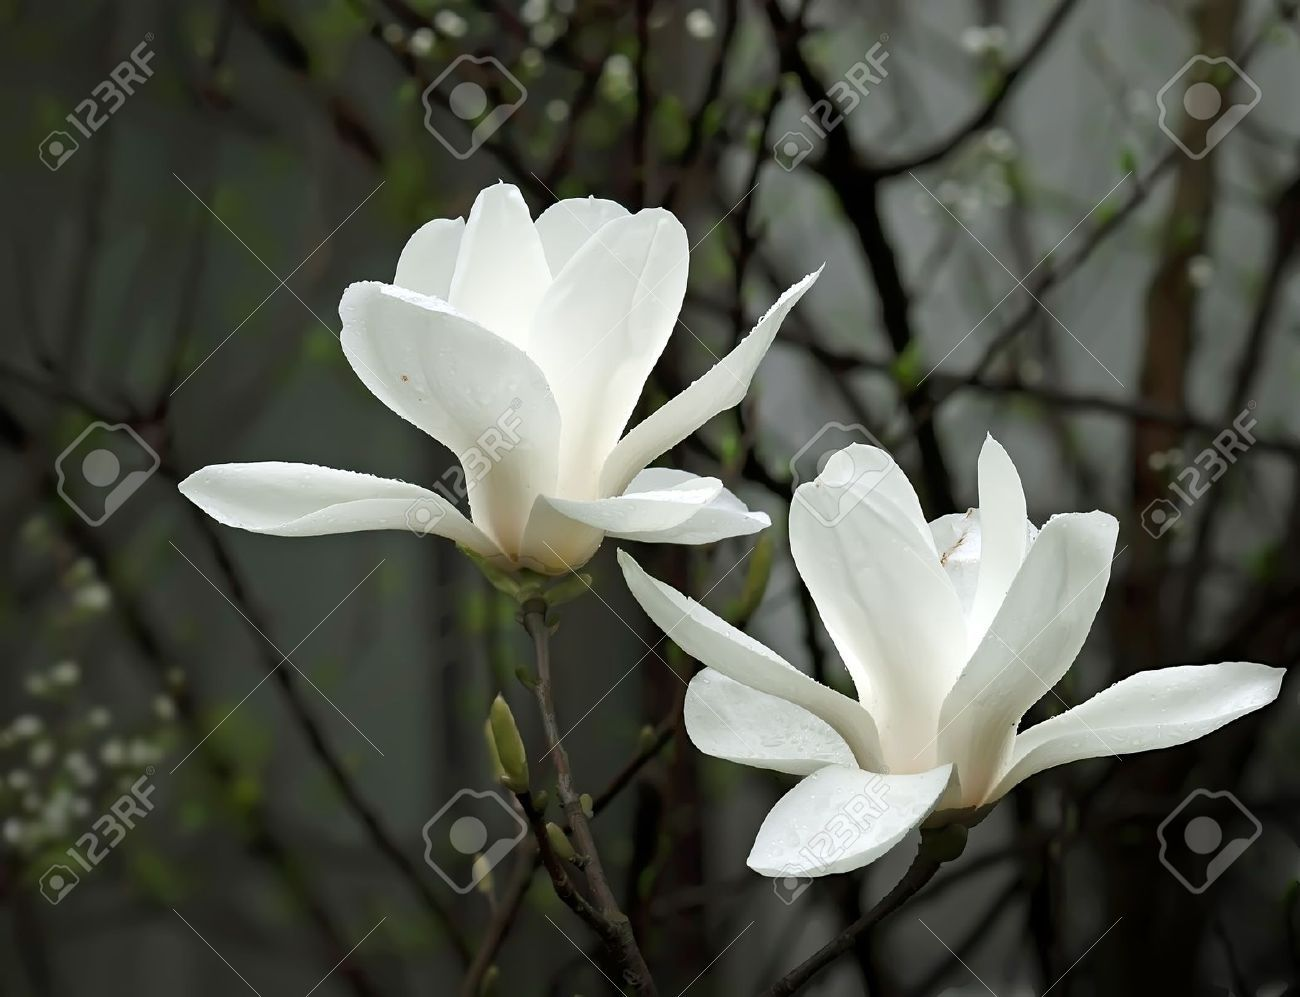 8455325 a beautiful white magnolia flower with fresh odor stock picture of a beautiful white magnolia flower with fresh odor stock photo images and stock photography mightylinksfo Images